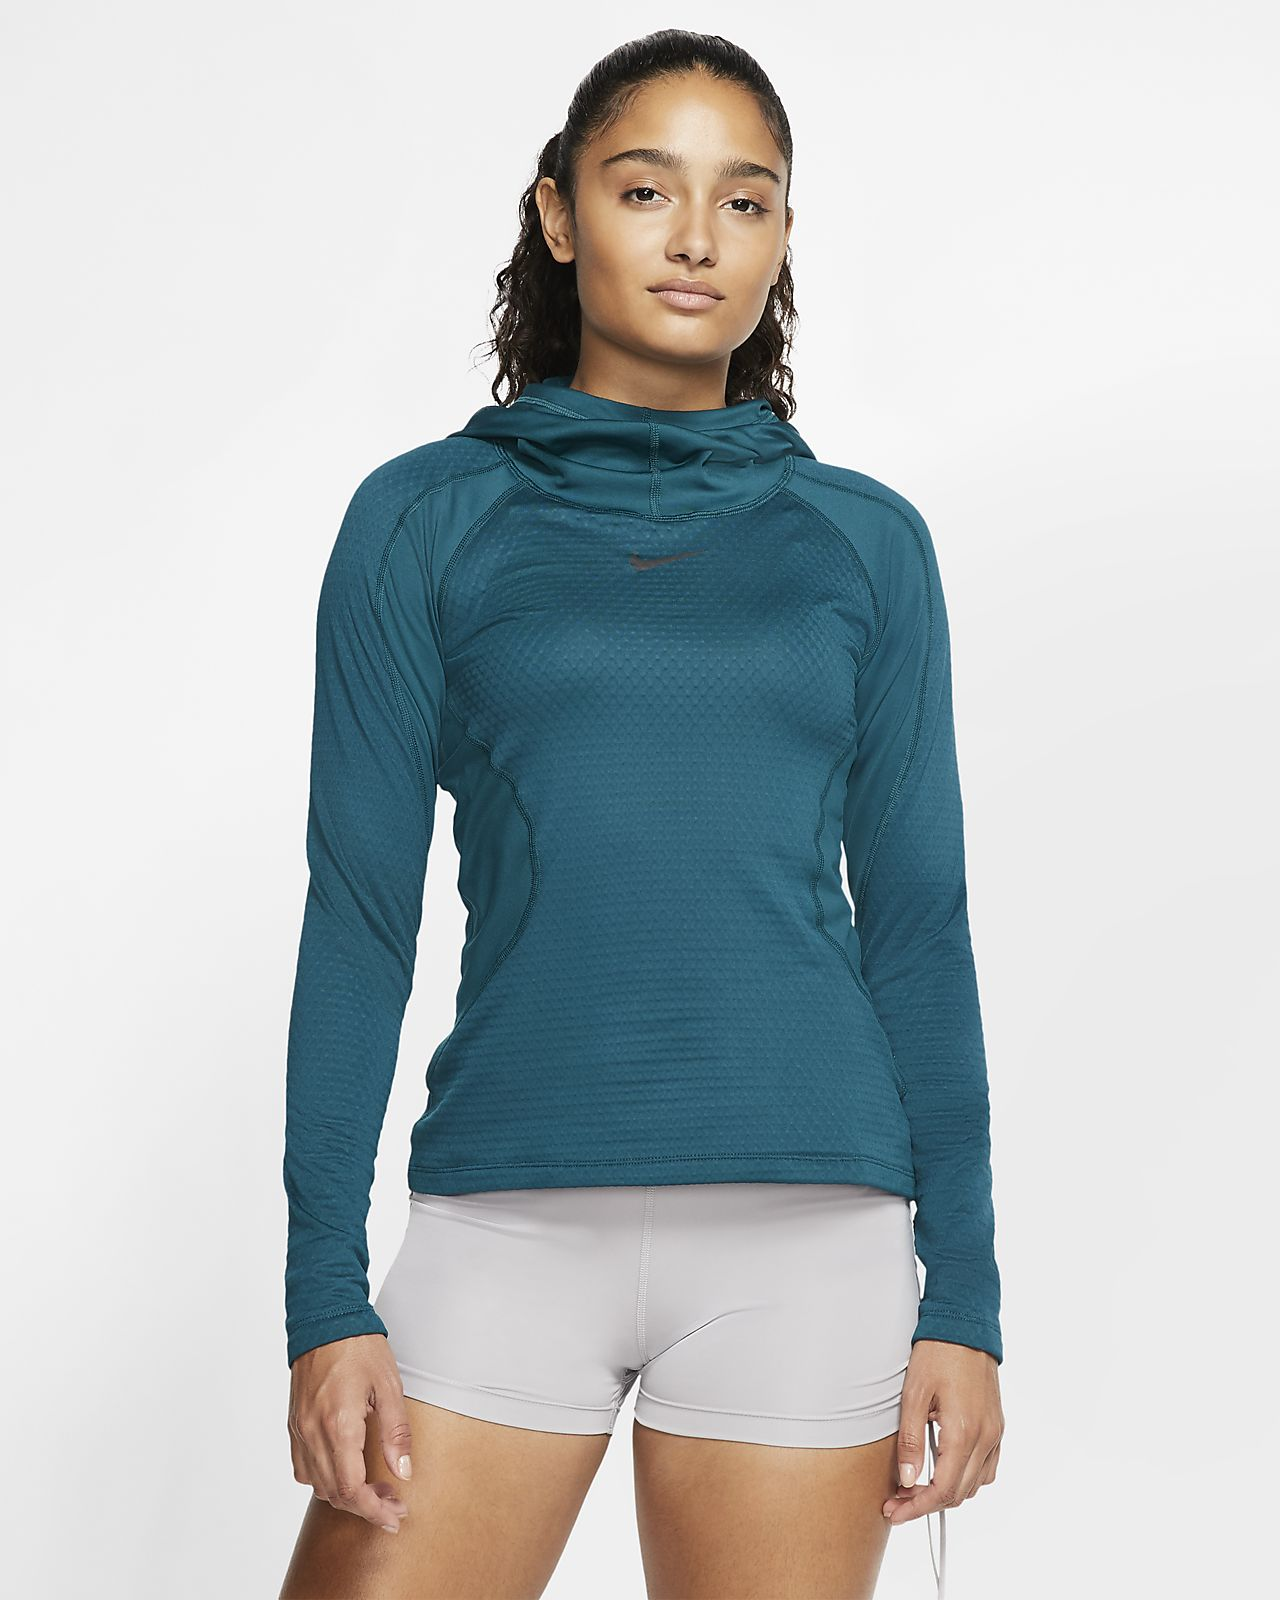 Felpa da training con cappuccio Nike Pro HyperWarm Hooded - Donna